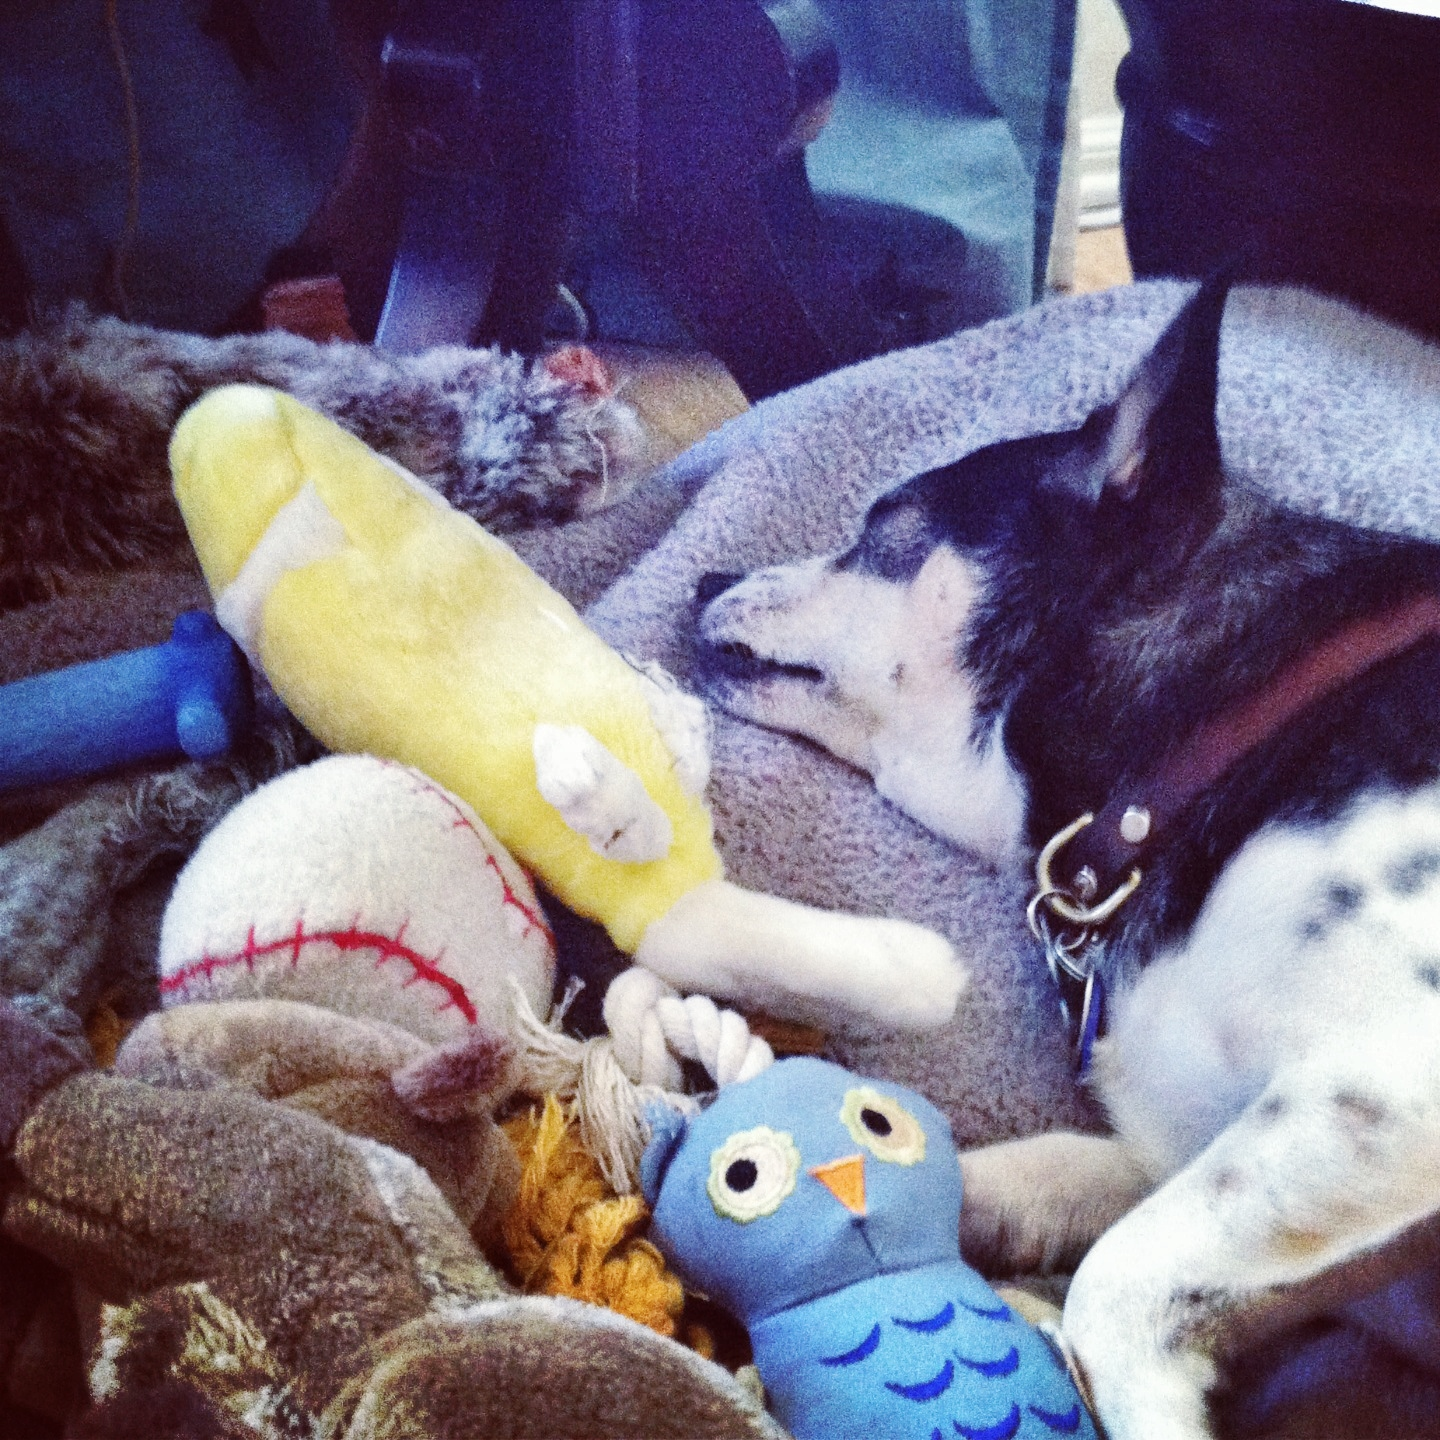 Toby, the toy hoarder.